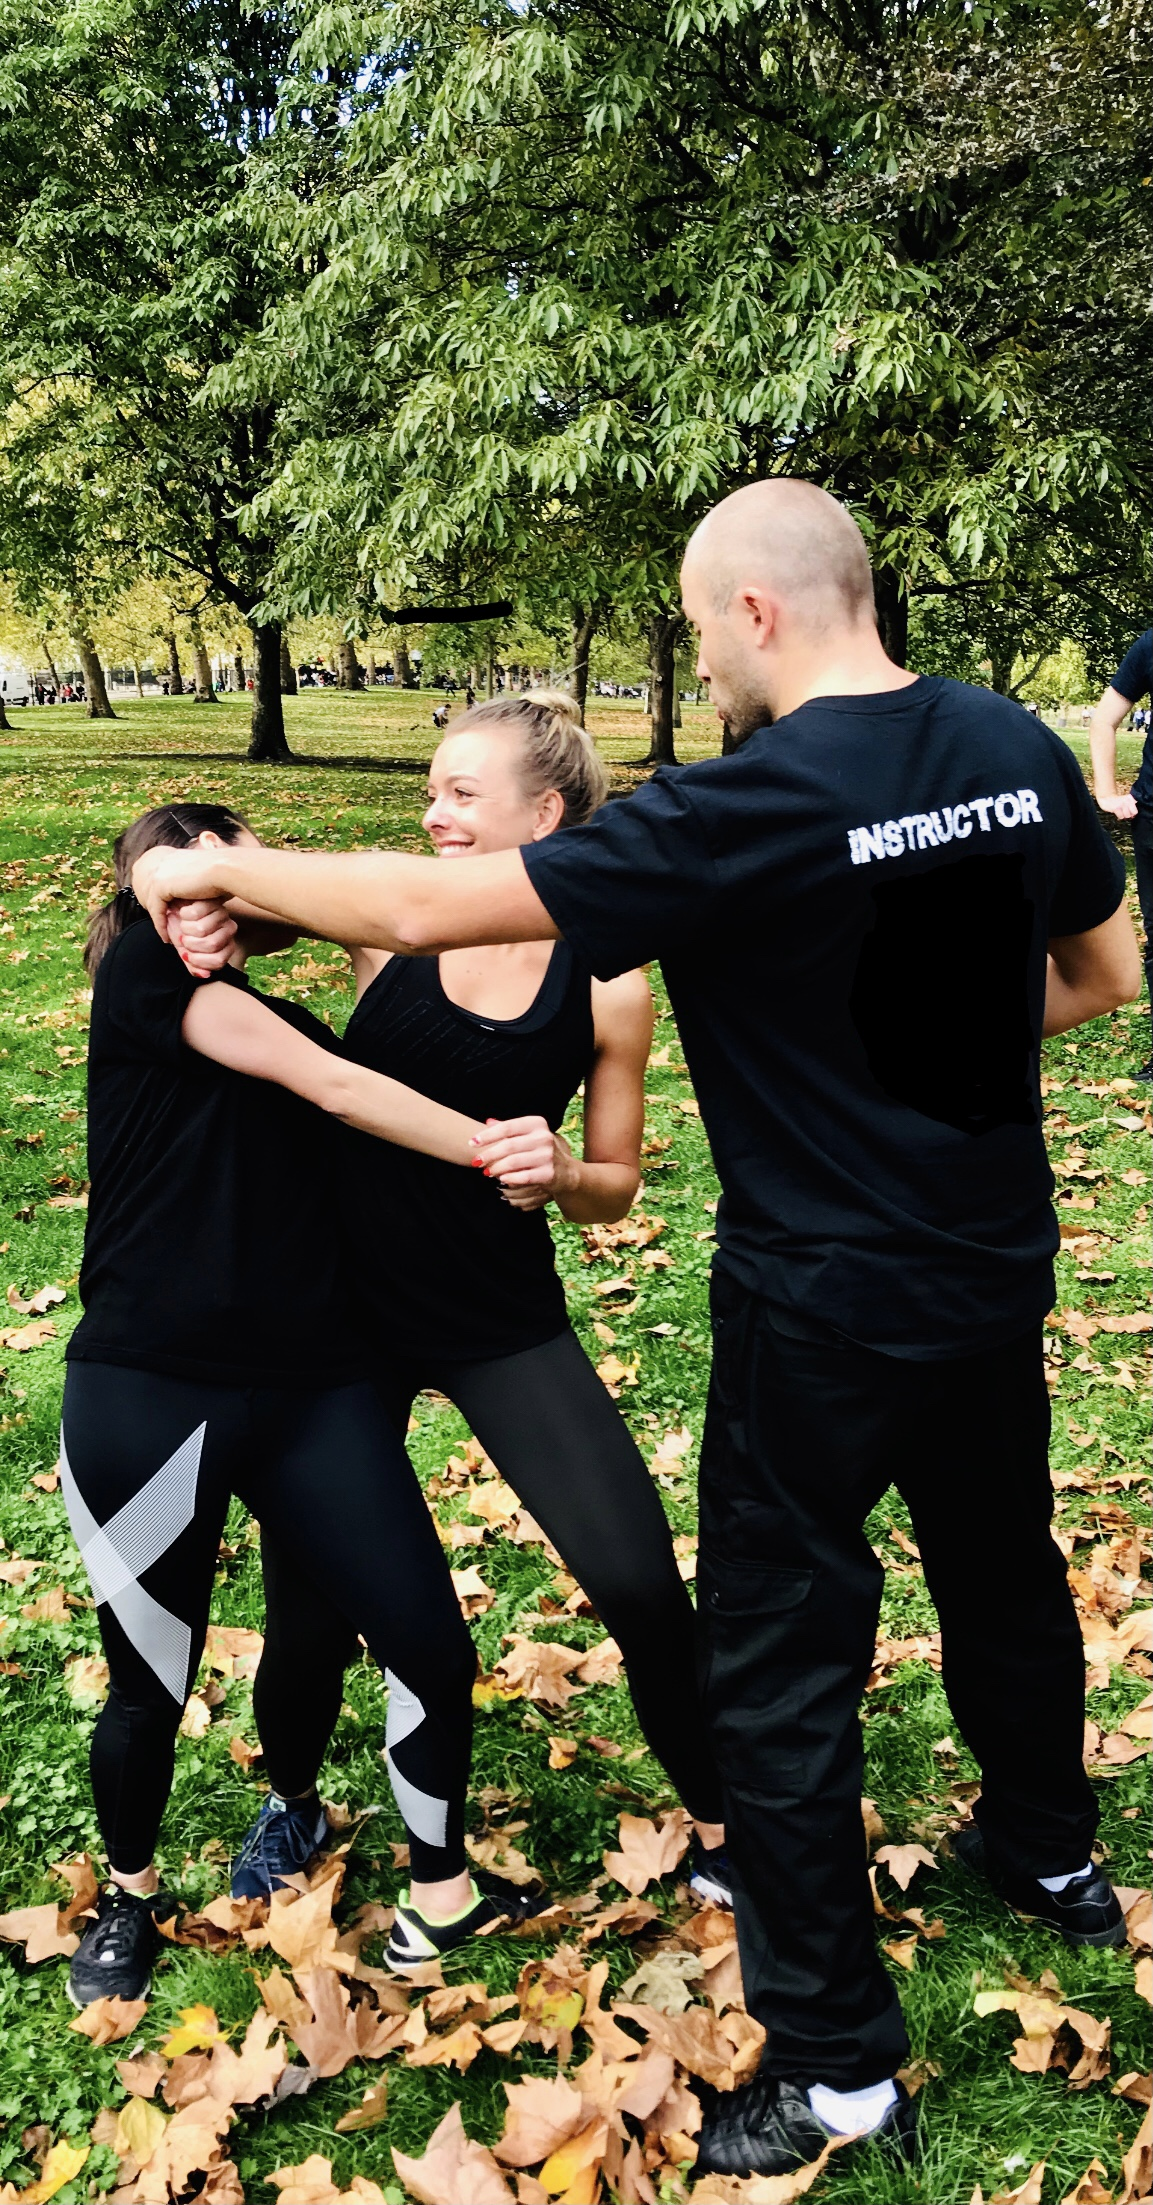 One to one self-defence class